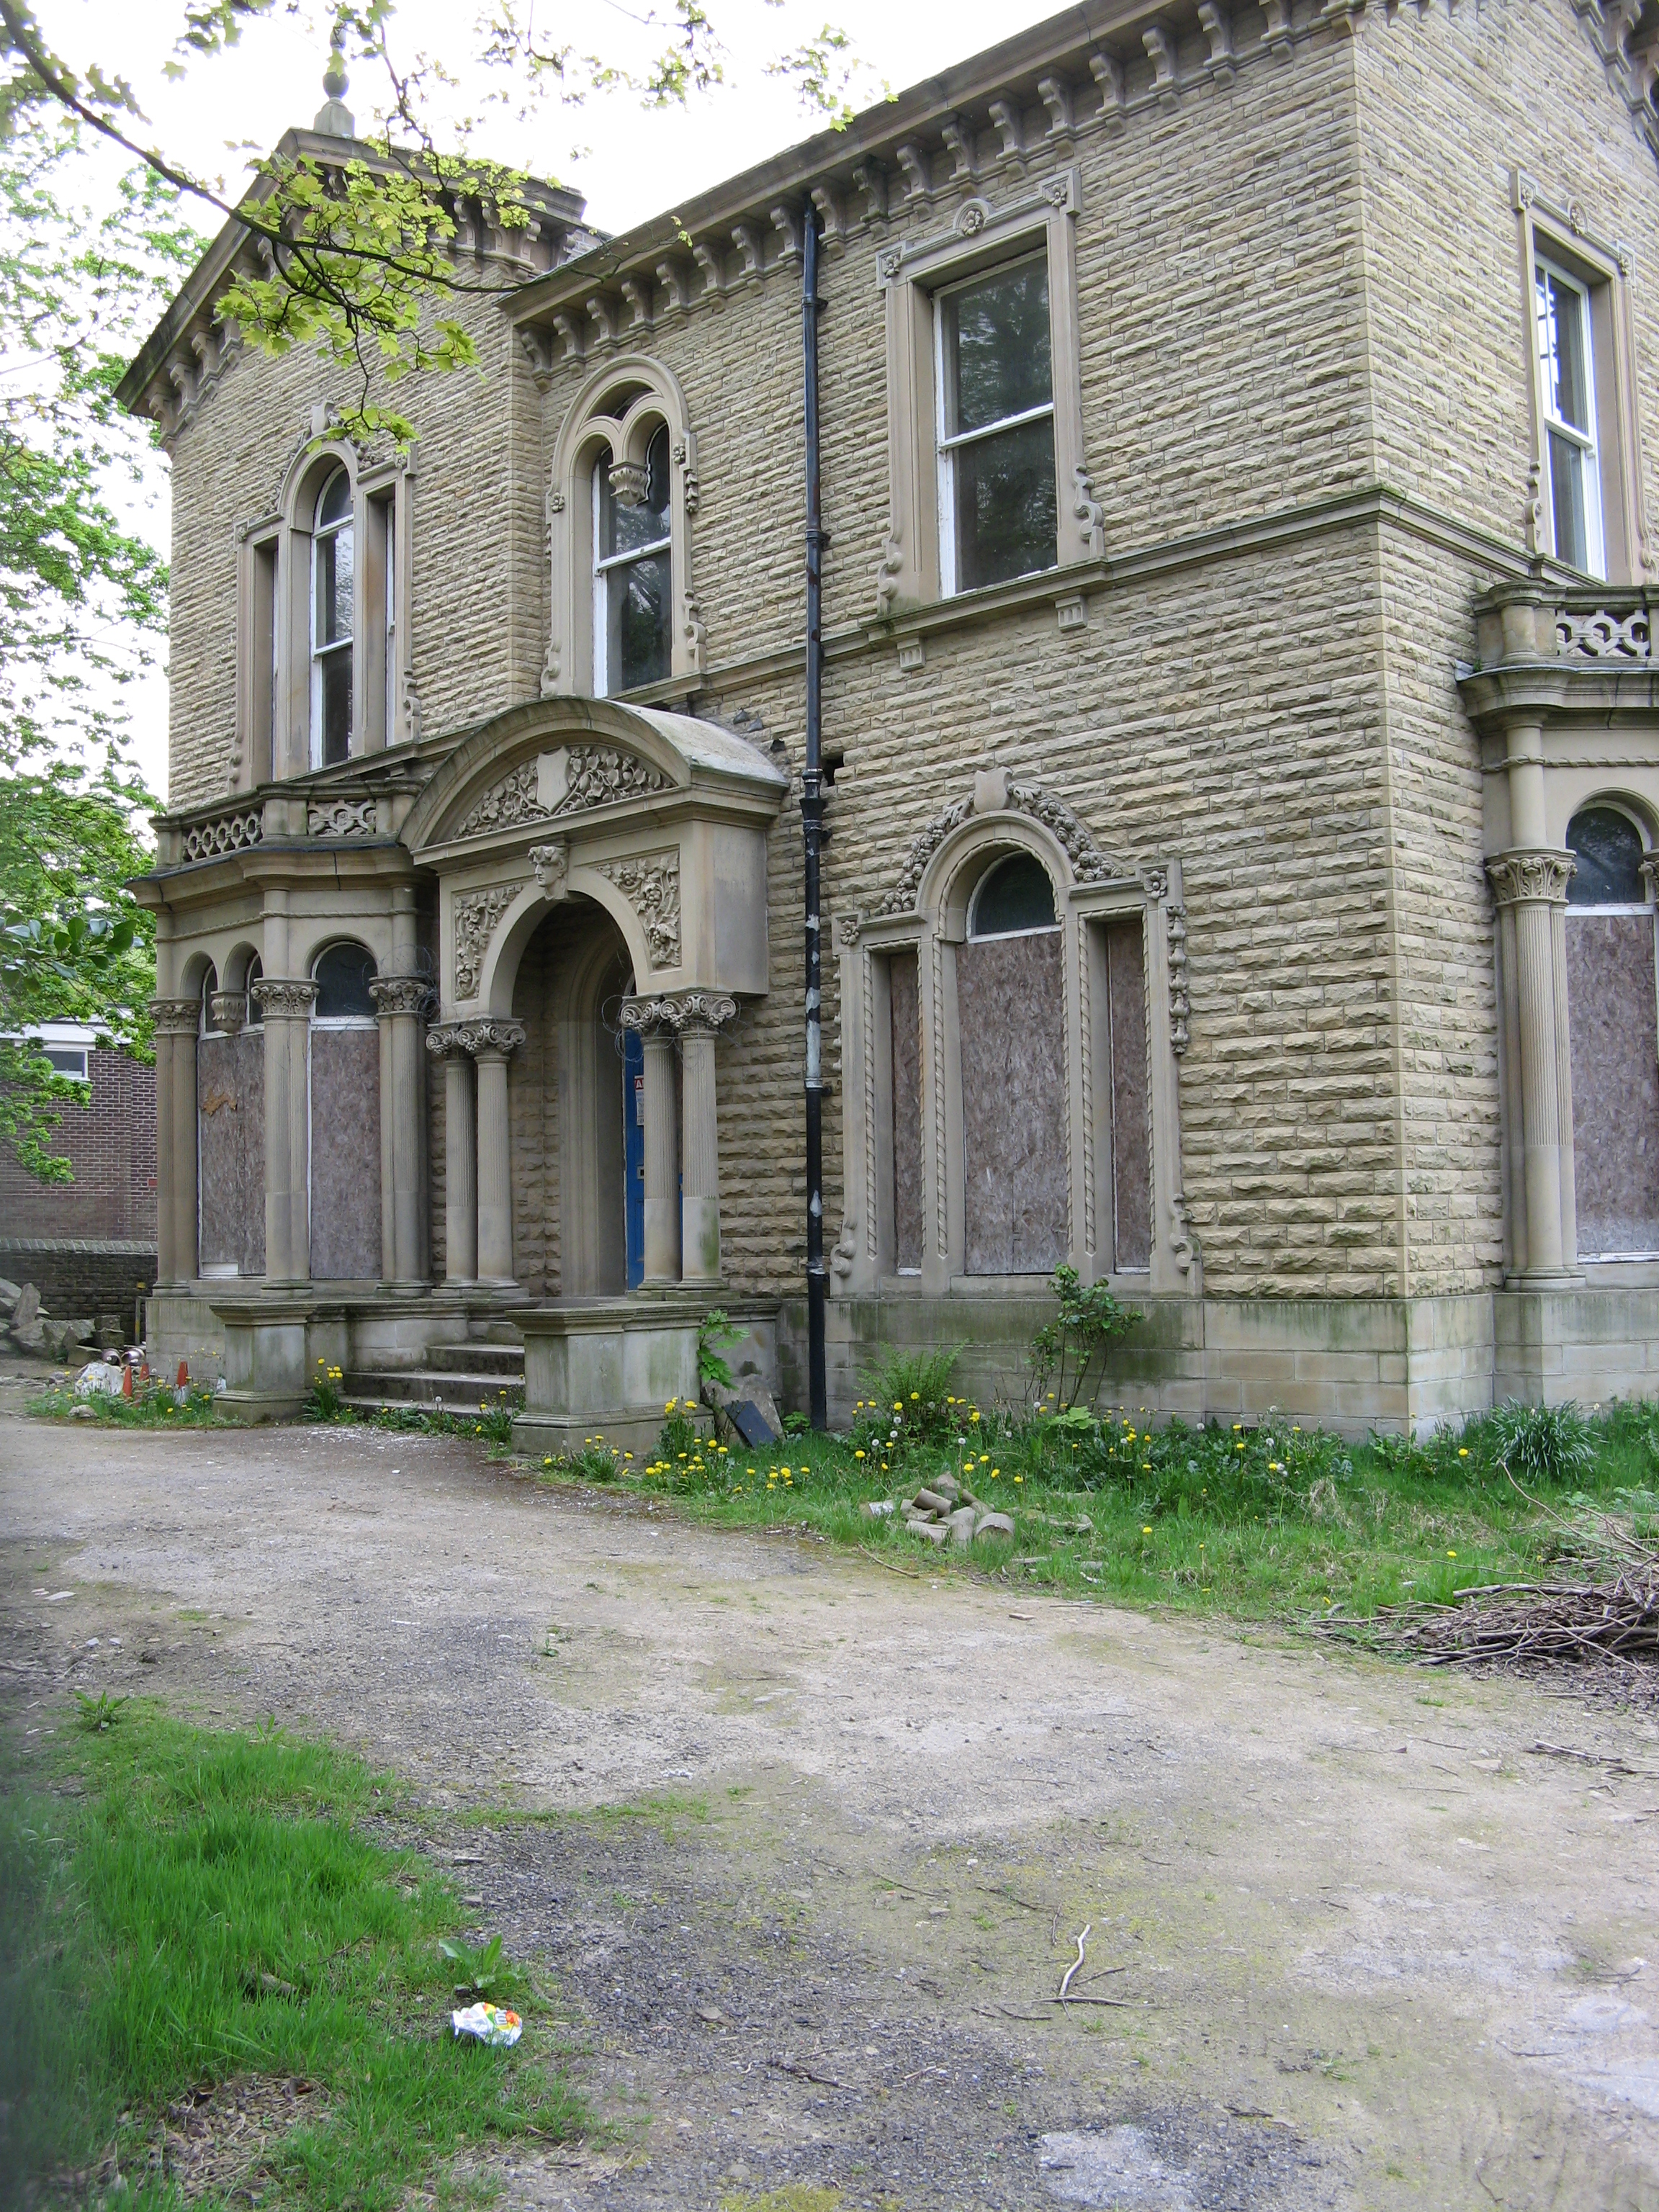 Somerville, Hungerford Road, Huddersfield in 2008